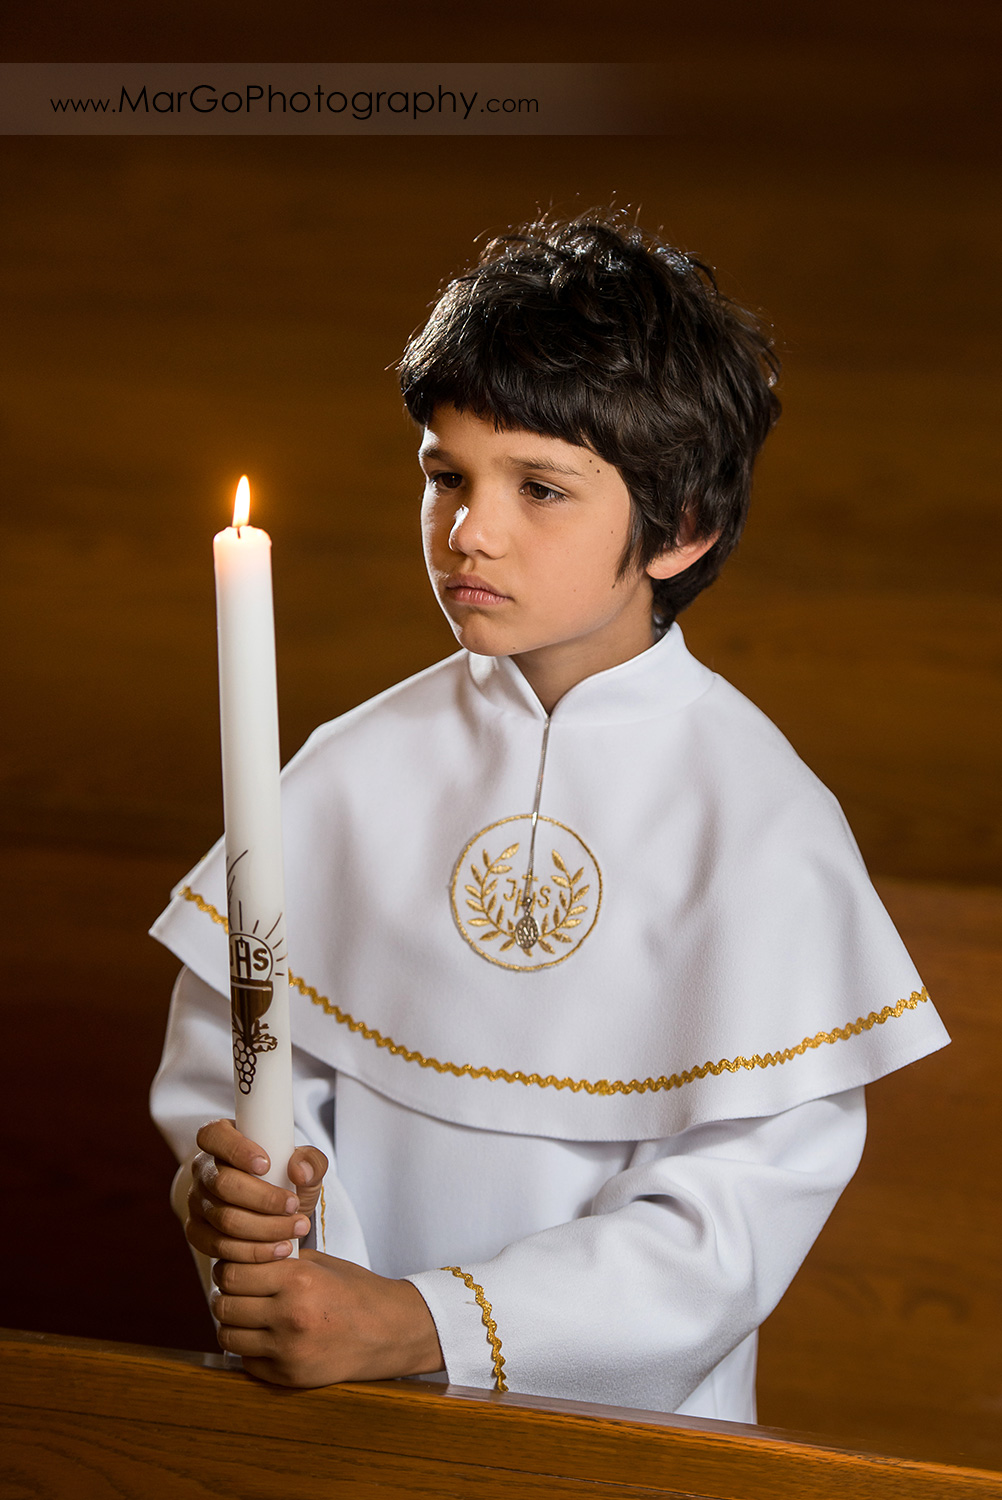 first communion boy in white alb holding candle in wooden San Jose church pews